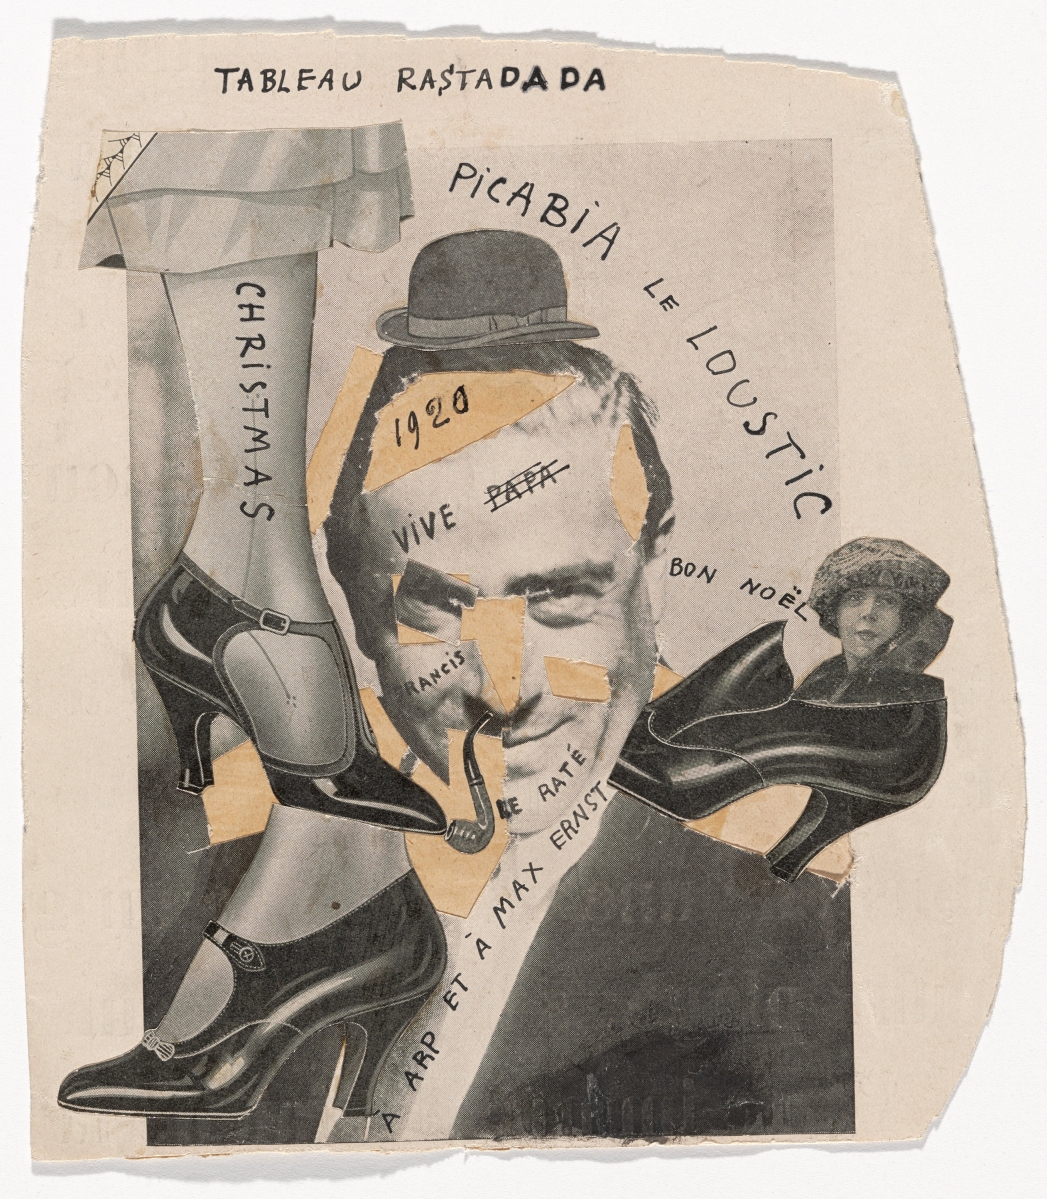 In New York: Francis Picabia 'Our Heads Are Round So Our Thoughts Can Change Direction'